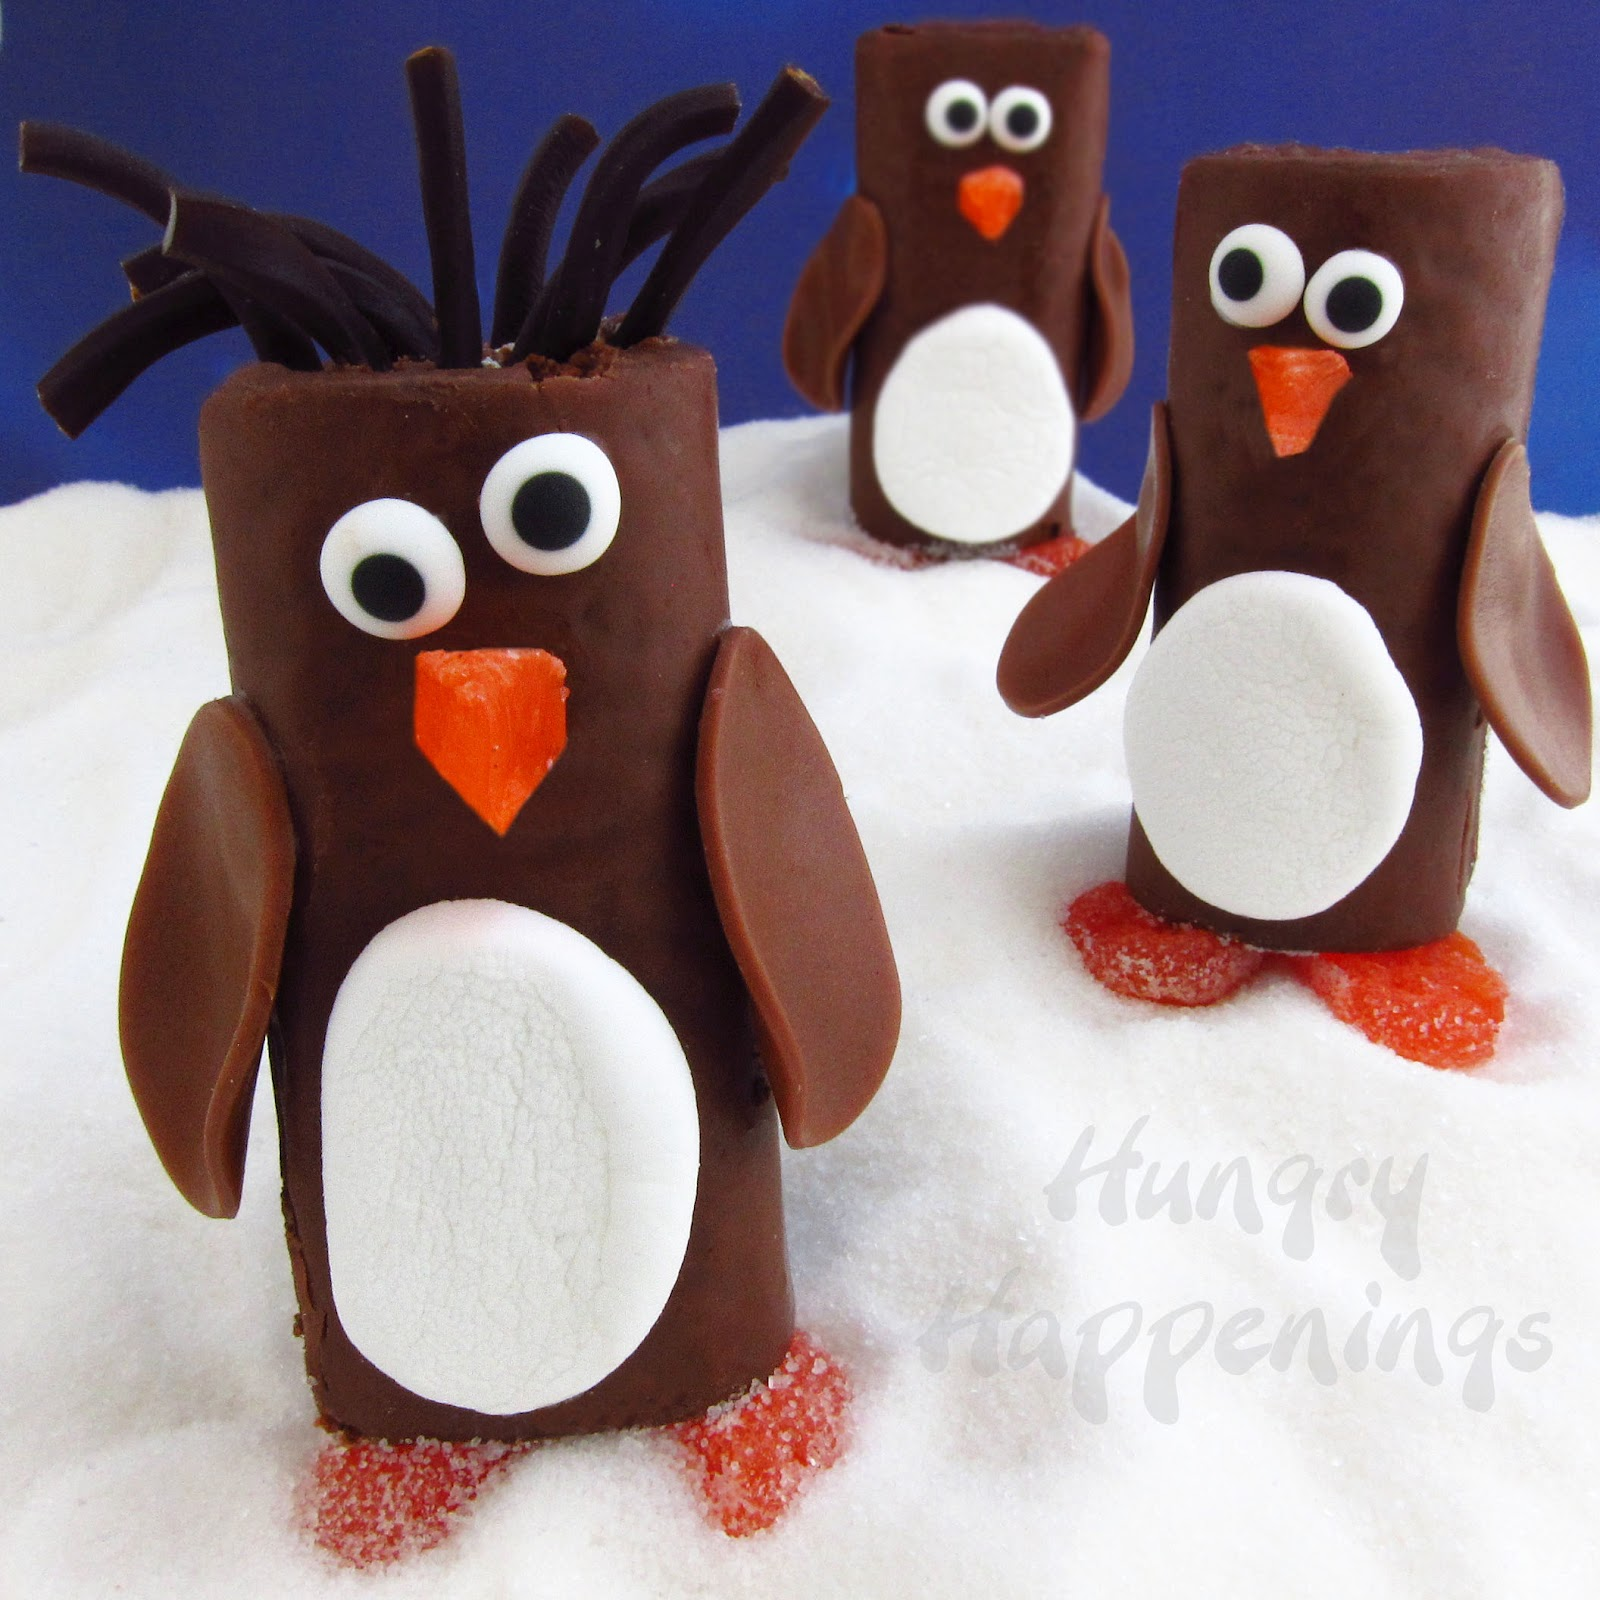 decorating snack cakes simple and fun activities for kids